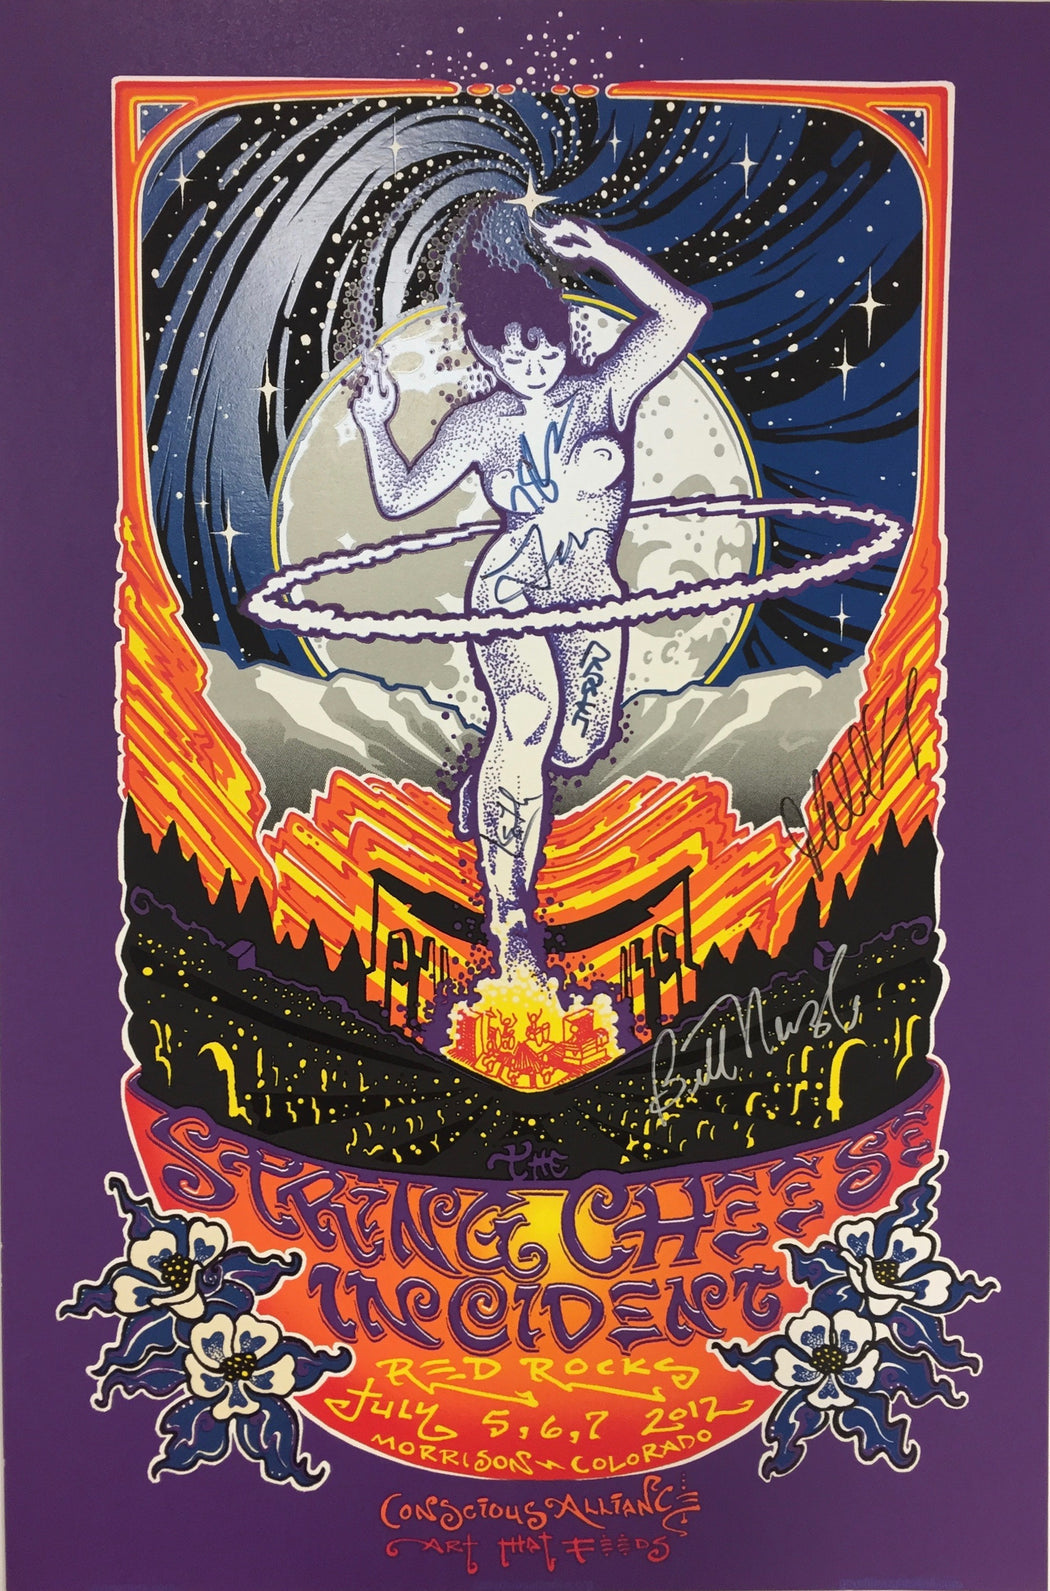 String Cheese Incident Red Rocks - 2012